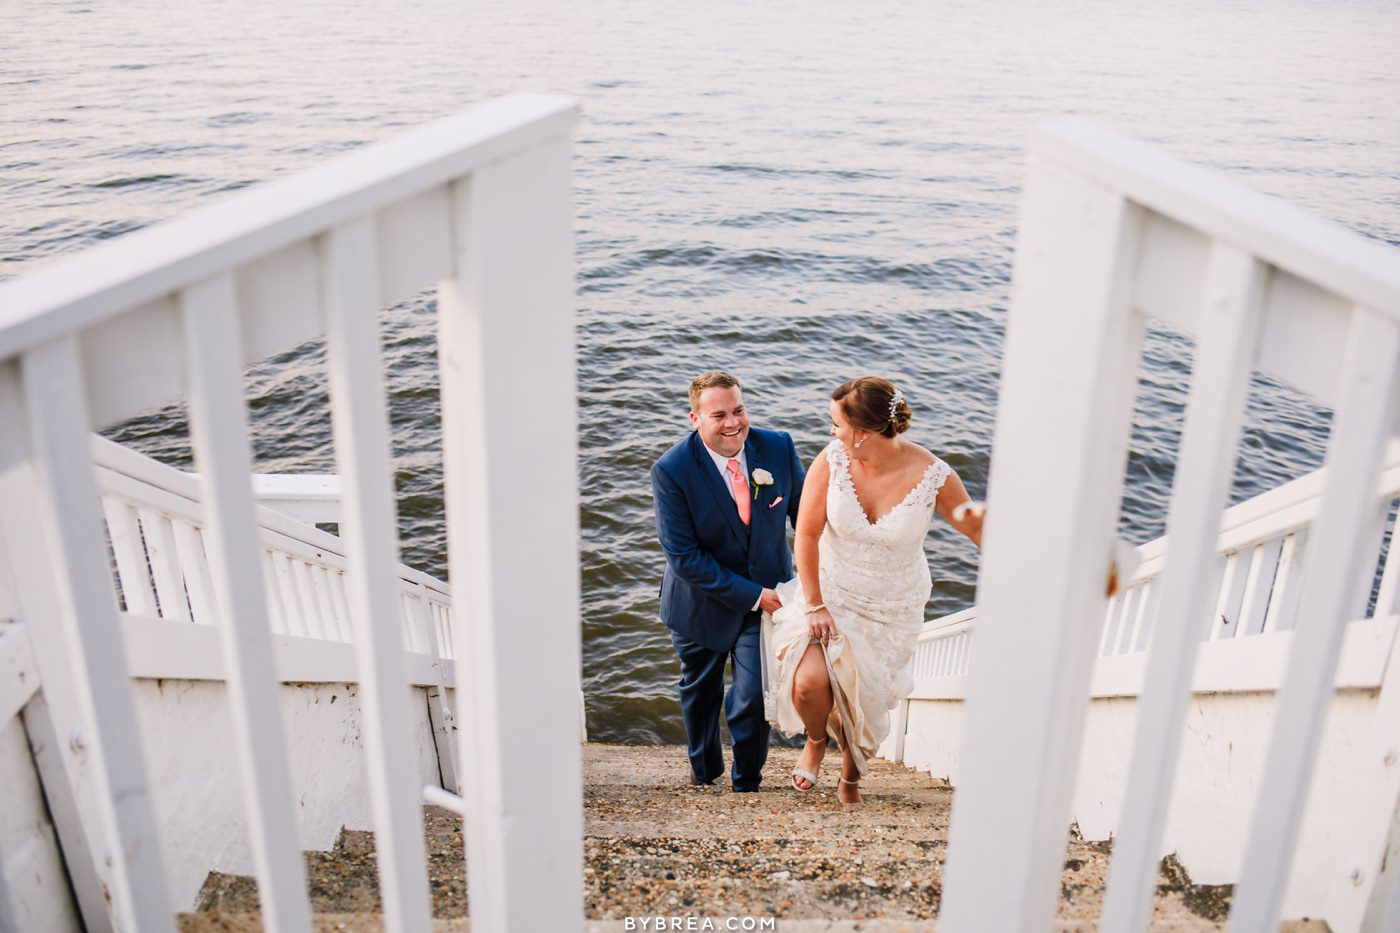 Celebrations at the bay wedding portrait by Photography by Brea